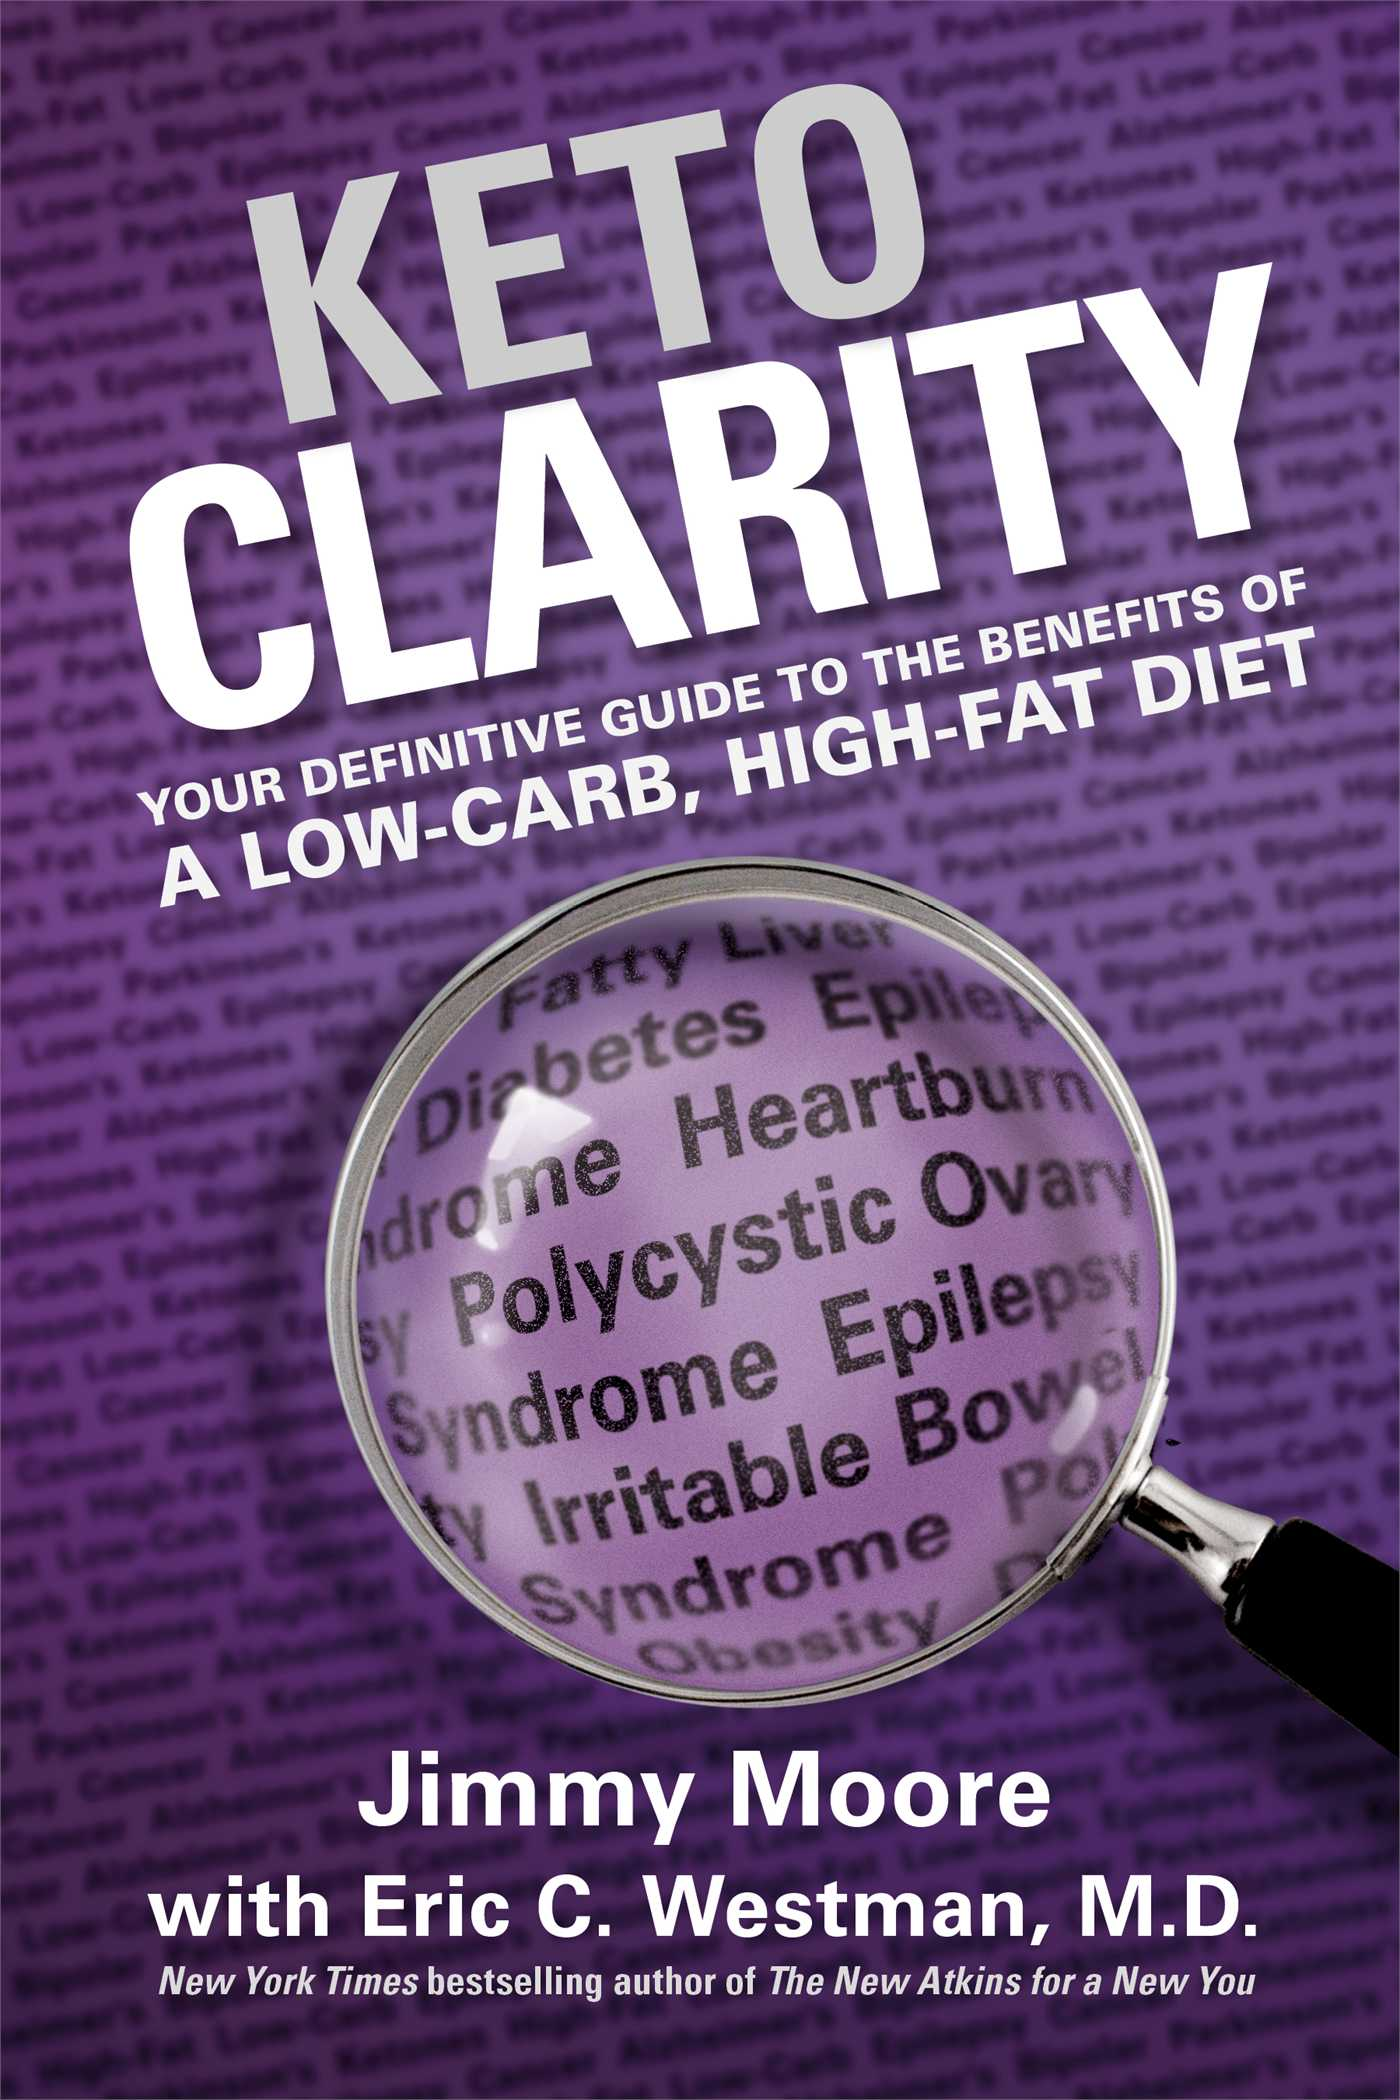 Keto clarity 9781628600070 hr